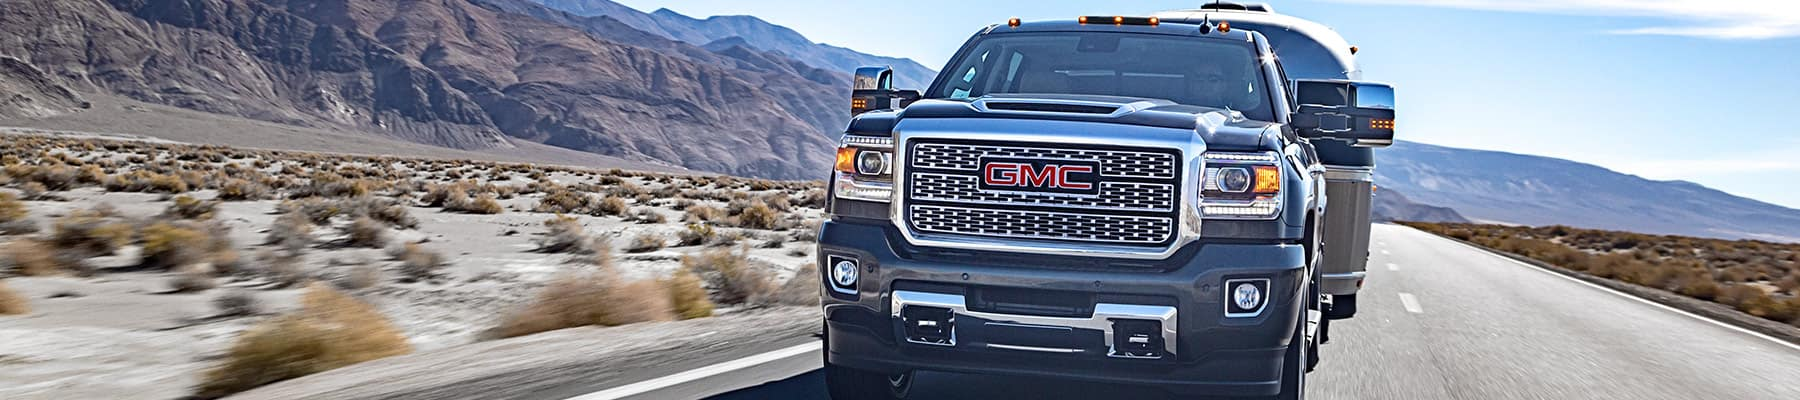 2019 GMc 2500 Hd Sierra driving down a road